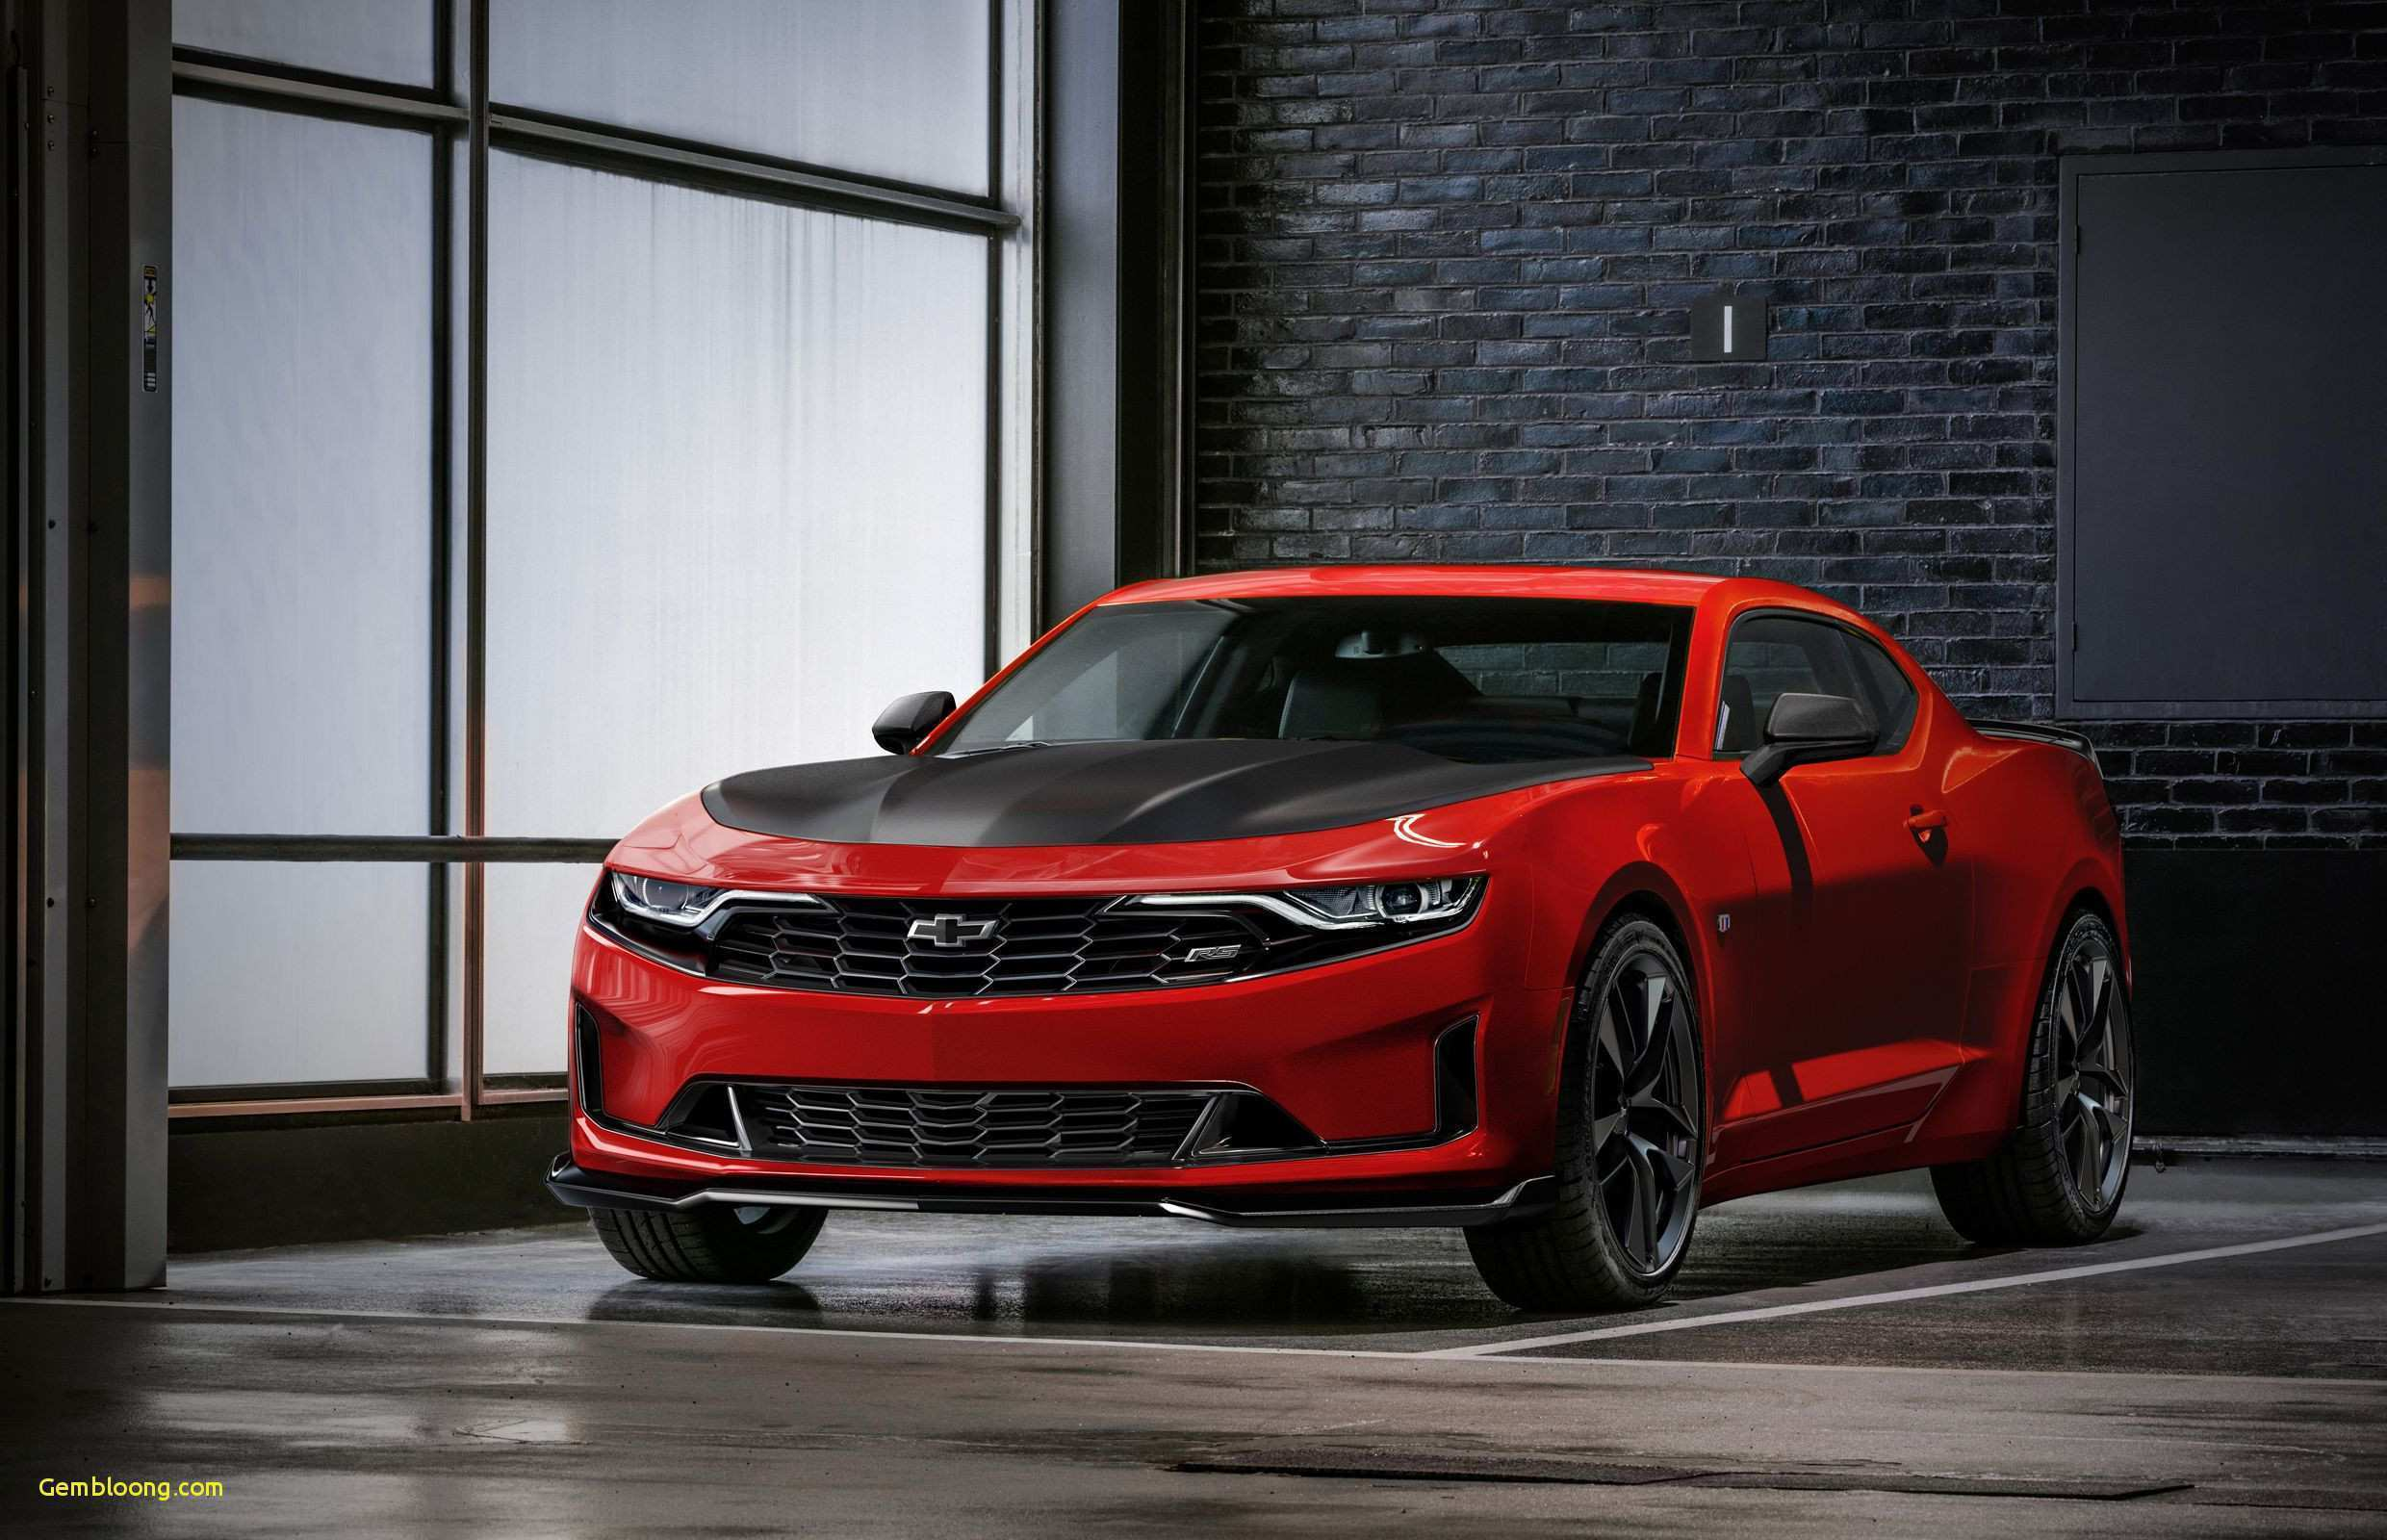 57 All New 2020 Chevrolet Camaro Ss Release with 2020 Chevrolet Camaro Ss